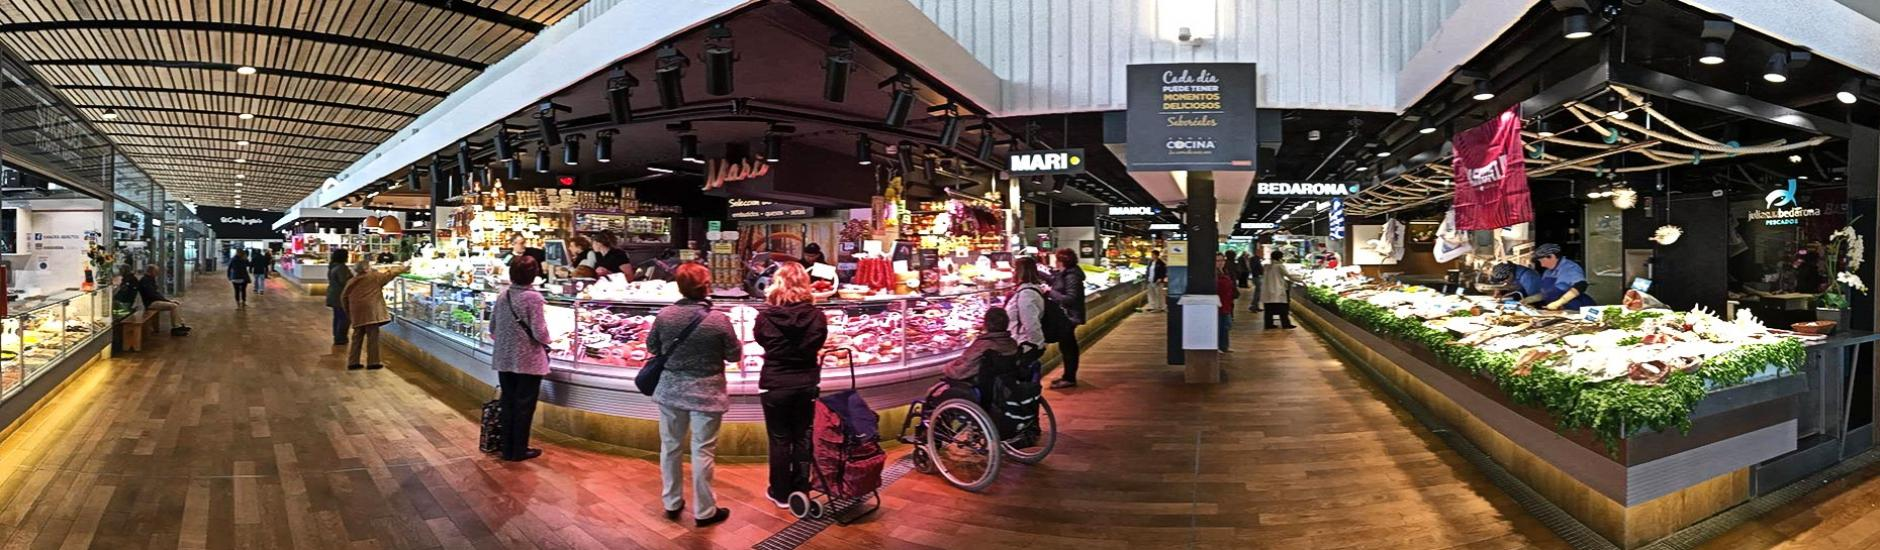 Food Market Vitoria